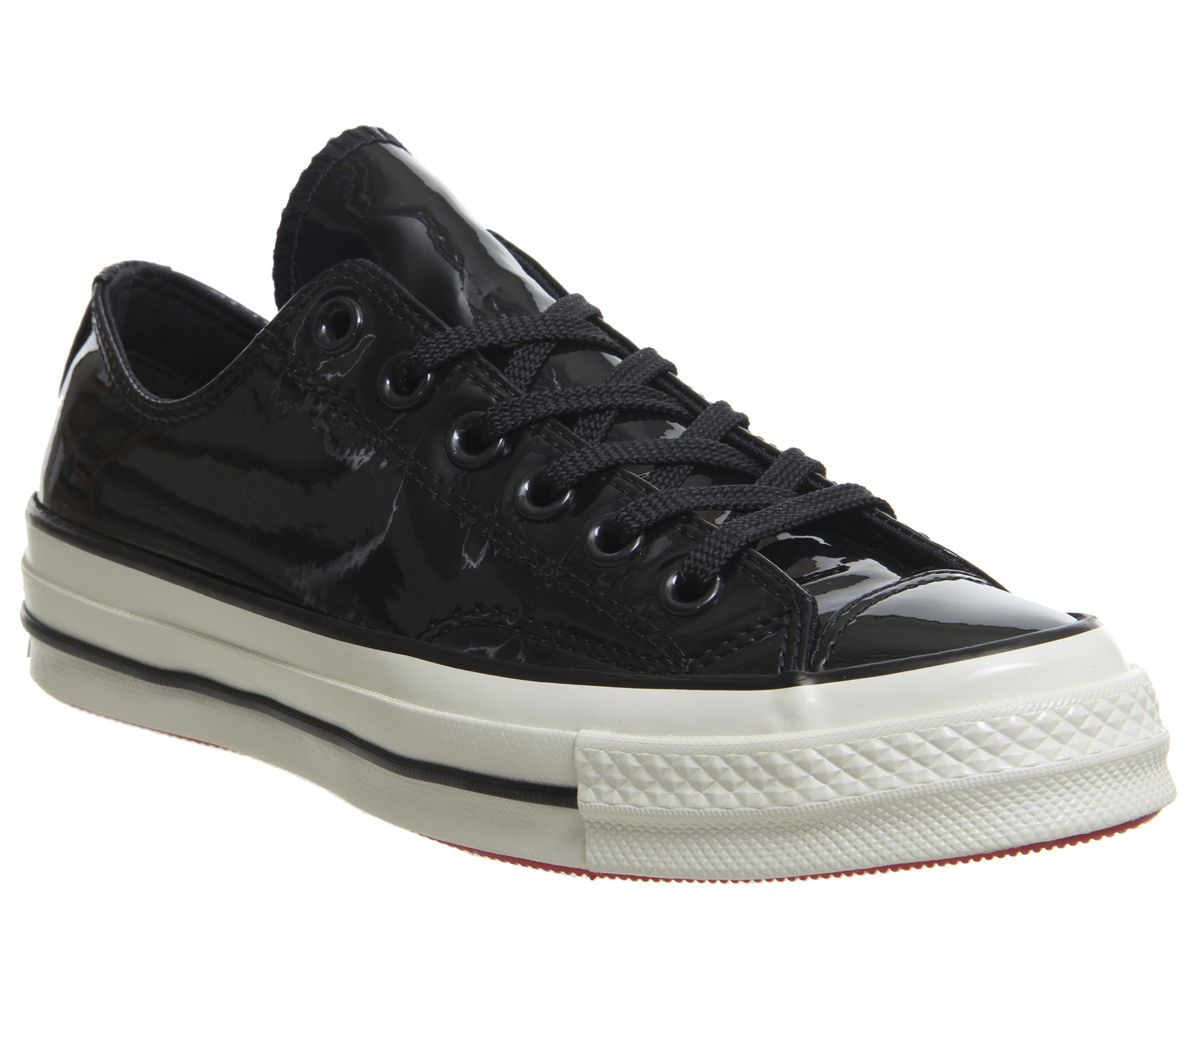 4637796a8f75 Converse All Star Ox 70S Trainers Black Black Egret Patent - Hers ...